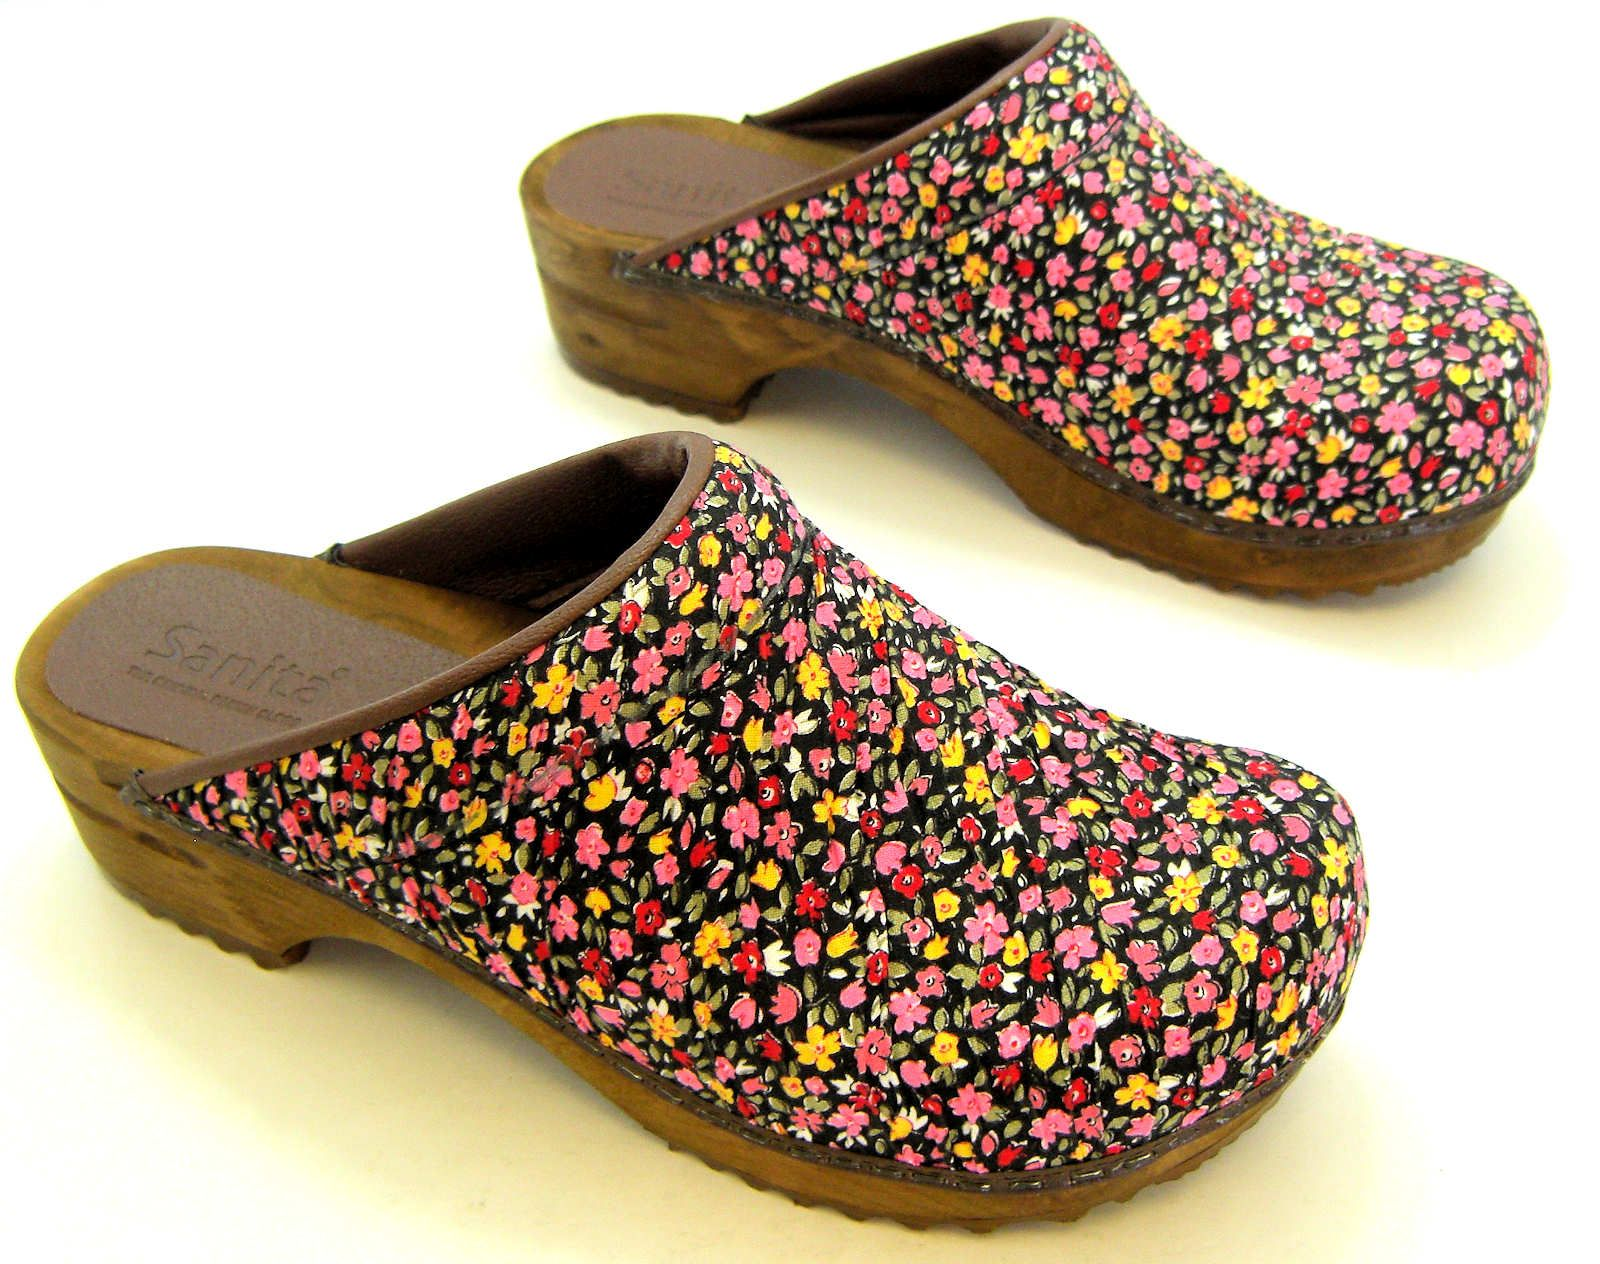 WOMENS SANITA FLORAL FLOWER SLIP ON MULES CLOGS SANDALS